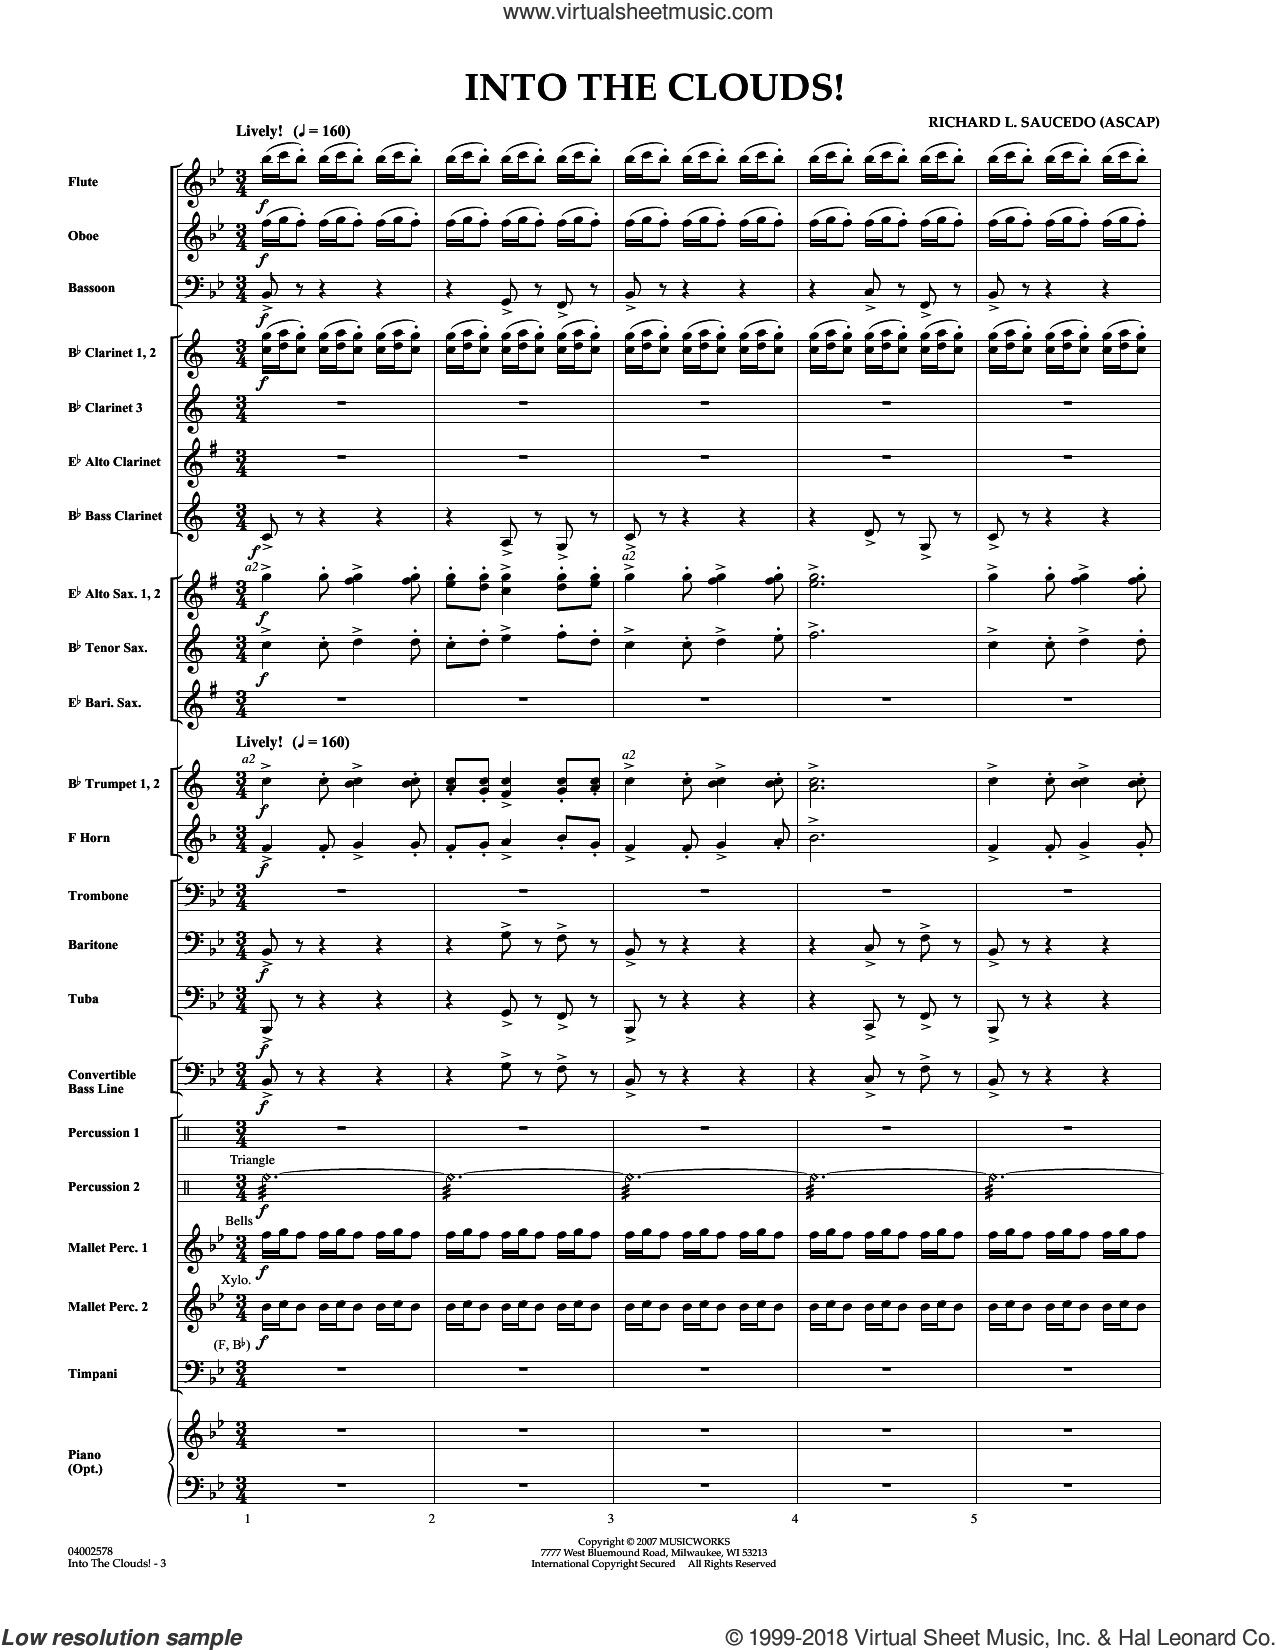 Into The Clouds! (COMPLETE) sheet music for concert band by Richard L. Saucedo, intermediate skill level